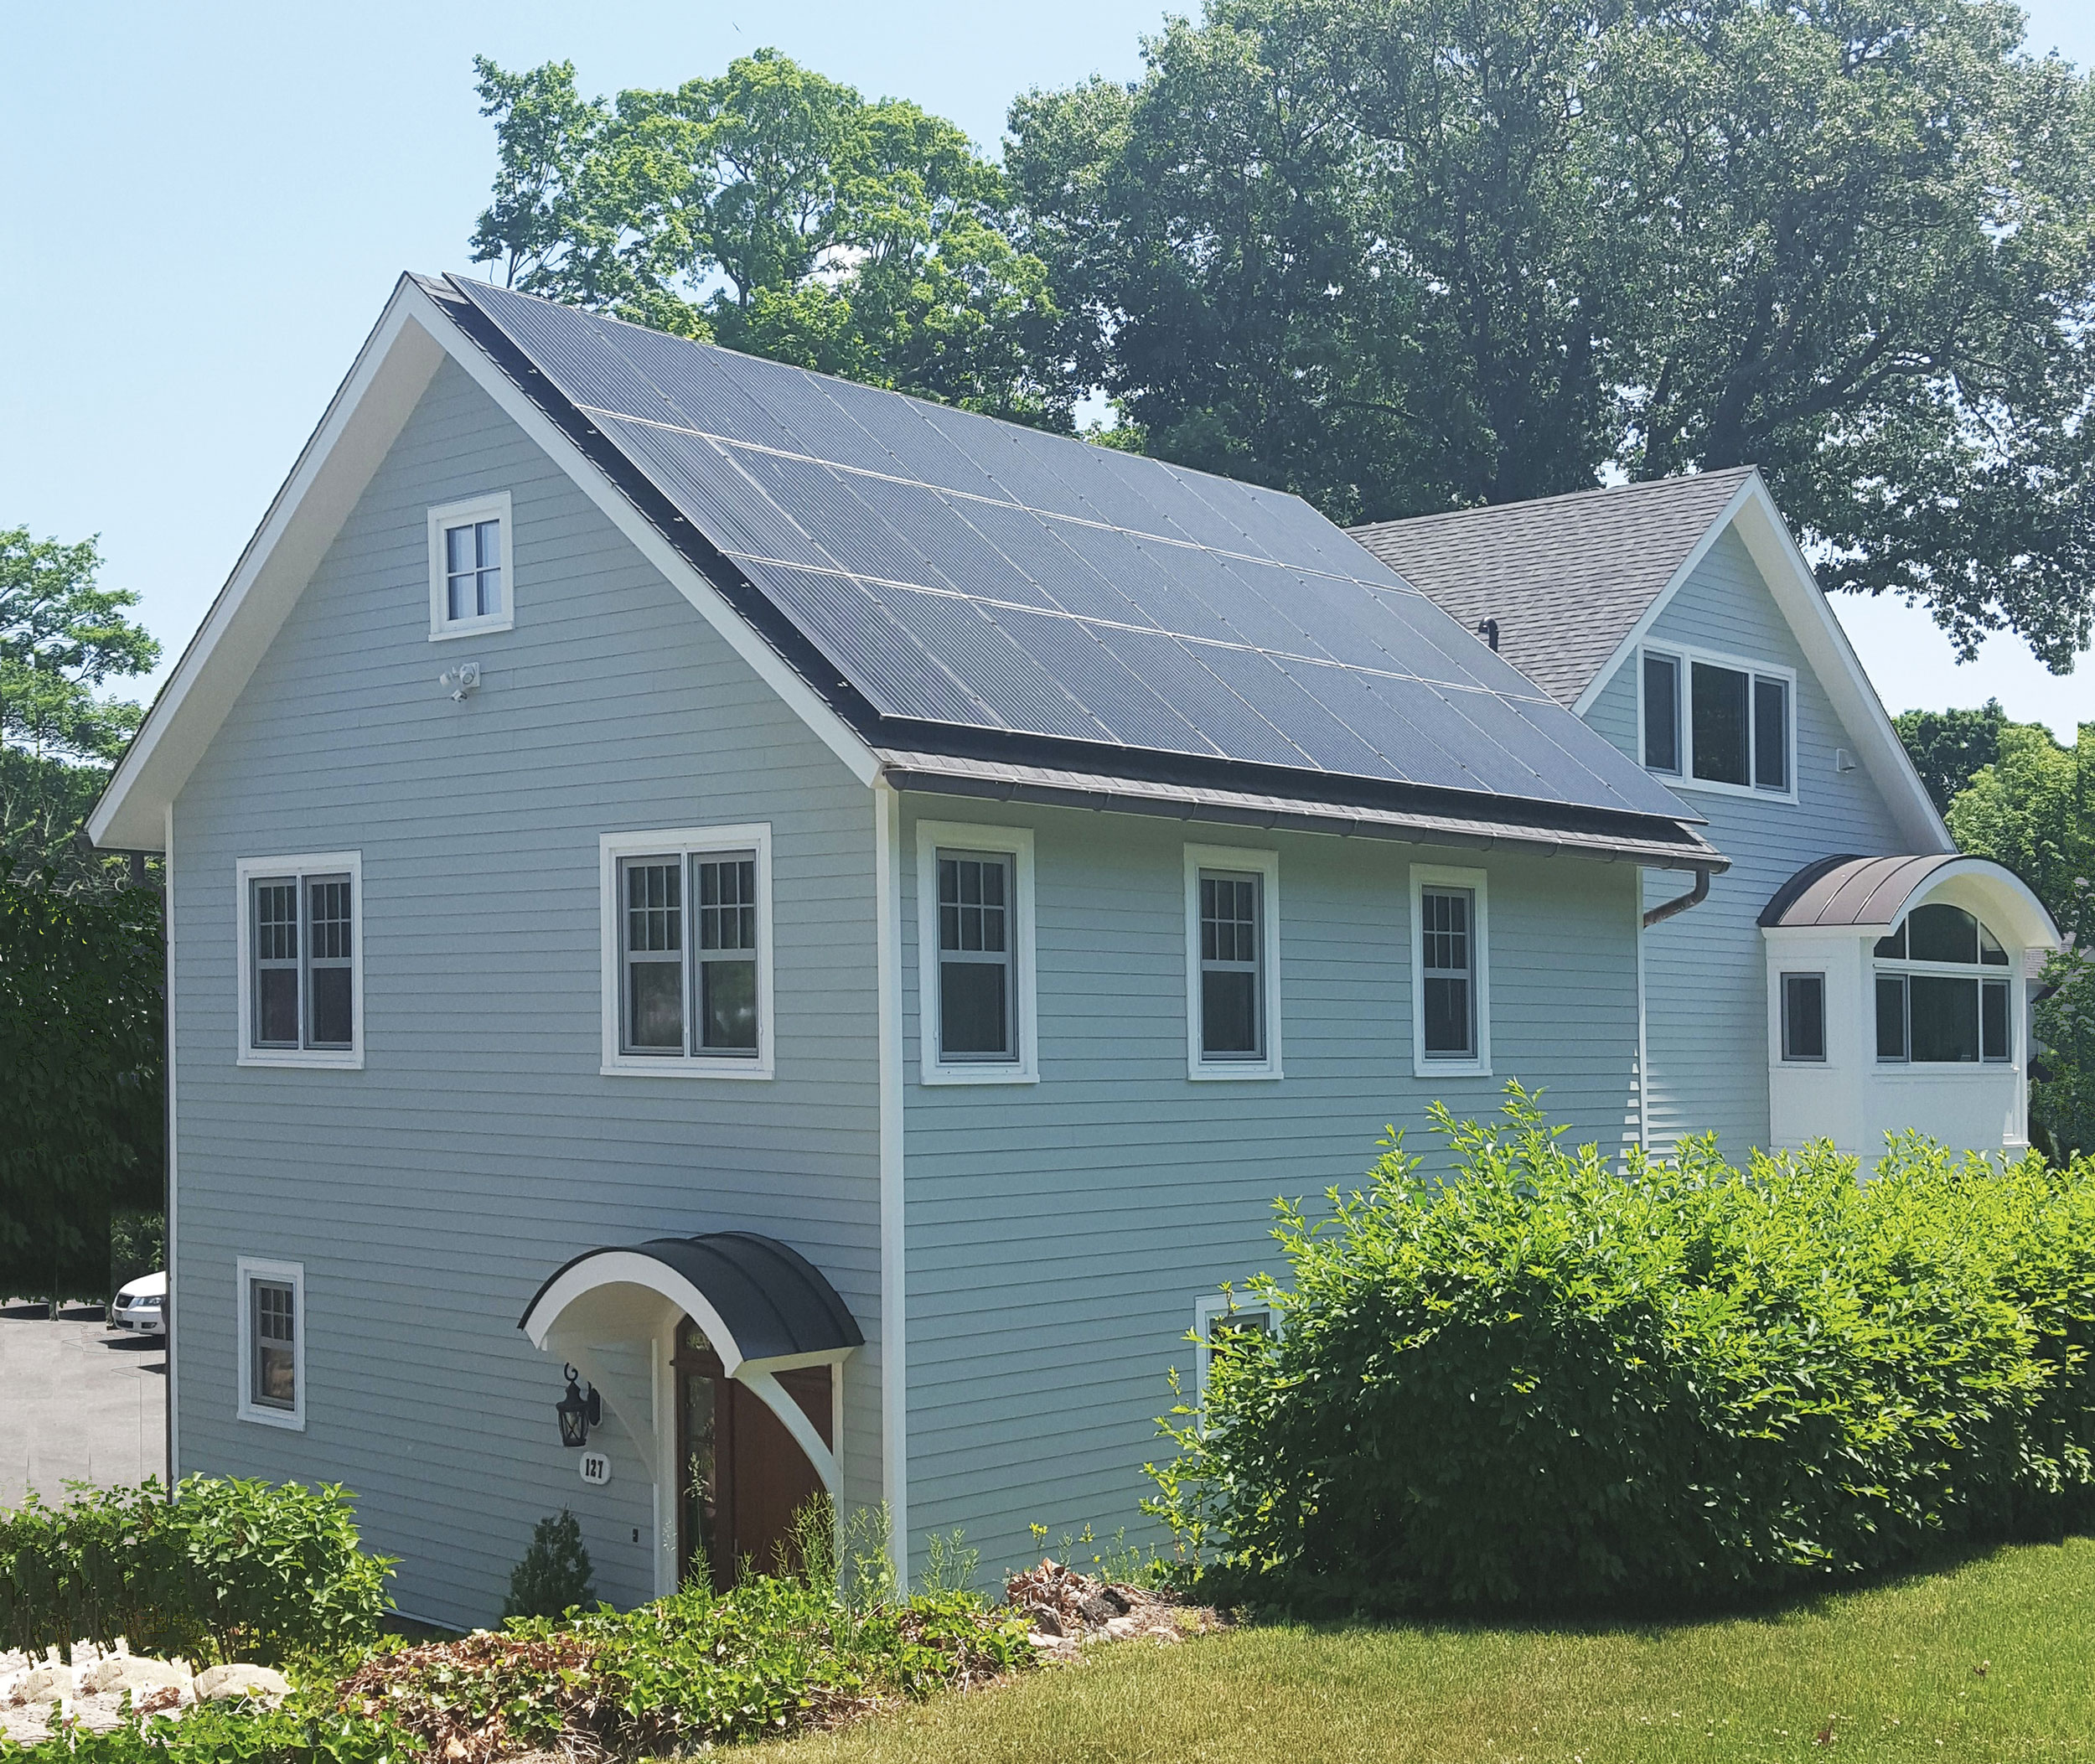 A new home in New Canaan  achieves near net zero energy usage through solar panels combined with a very low electrically supplied heating and cooling load.